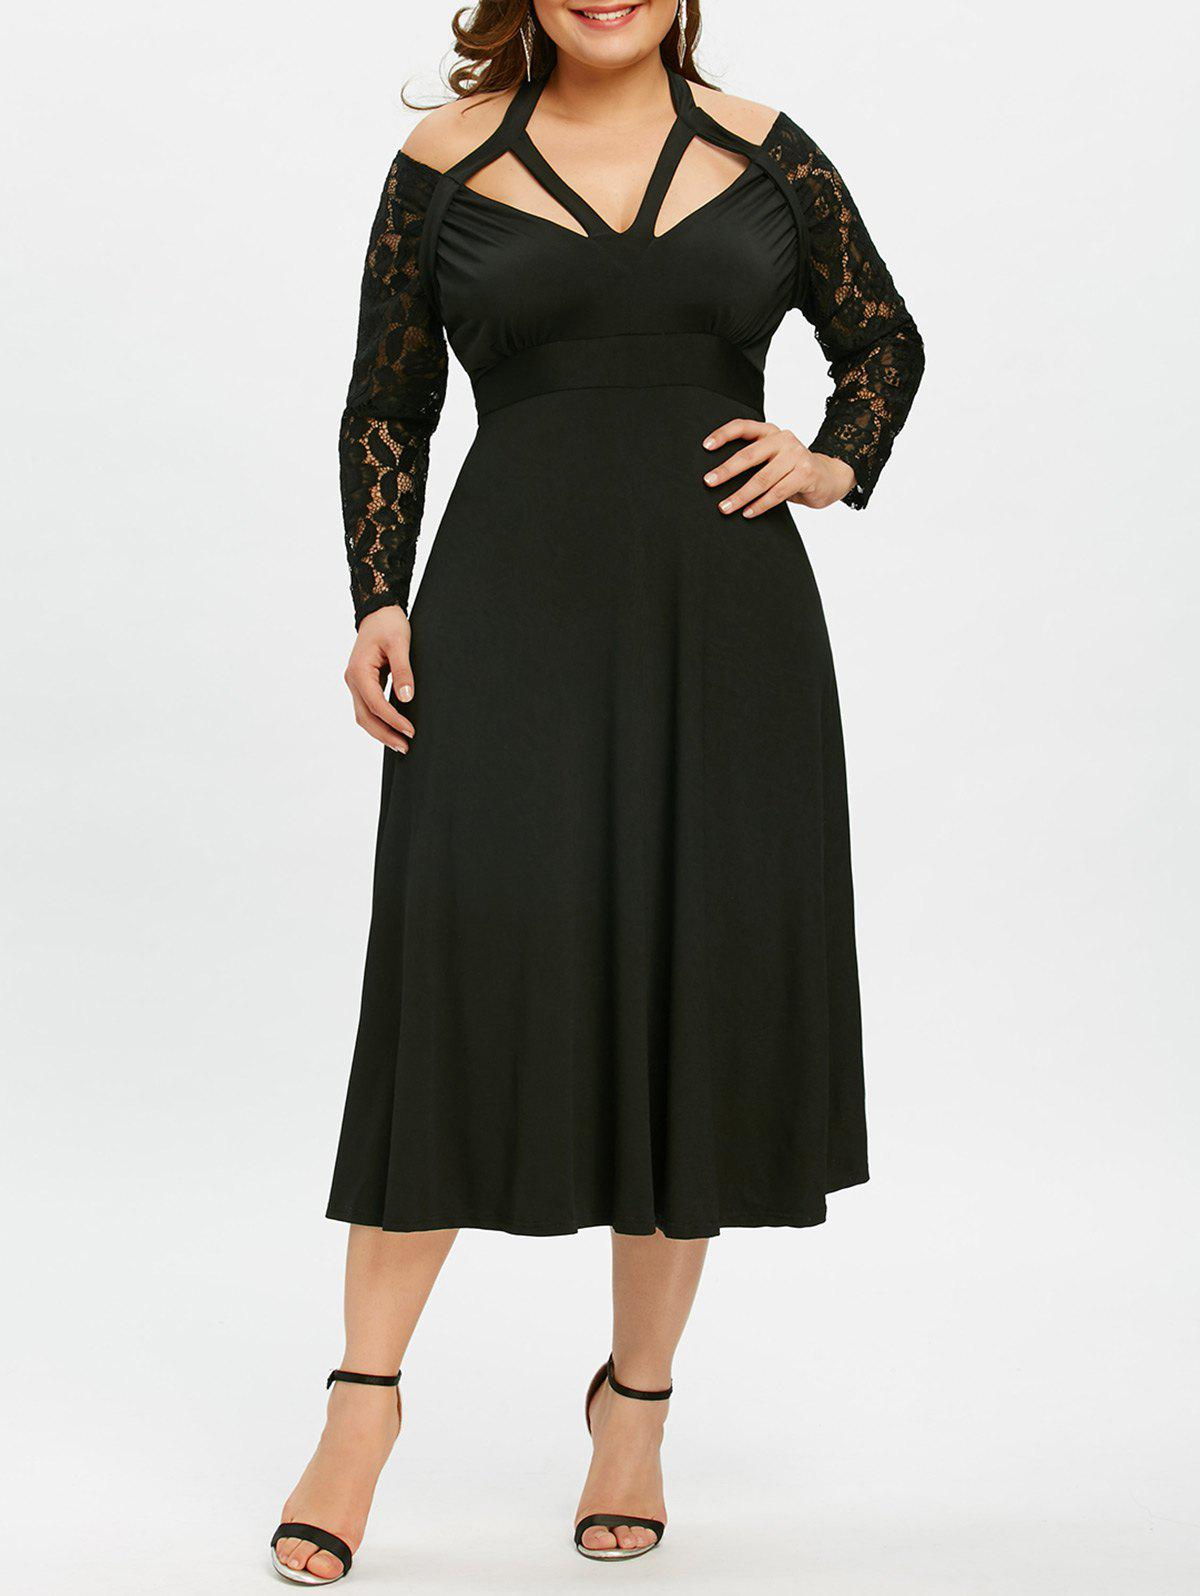 Unique Cut Out Plus Size Empire Waist Flare Dress